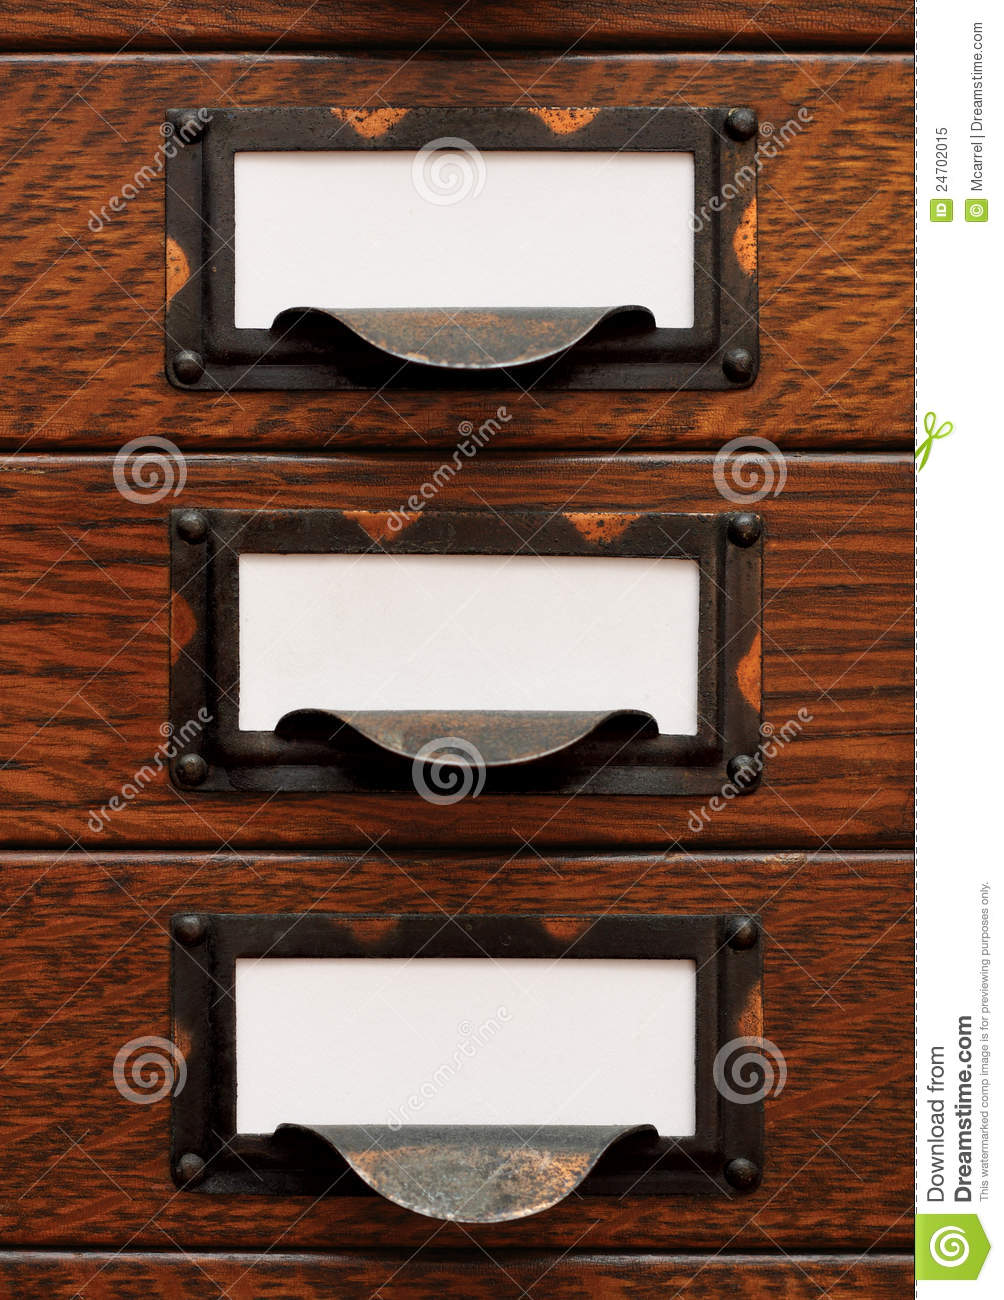 Old File Drawers With Blank Labels Stock Image Image